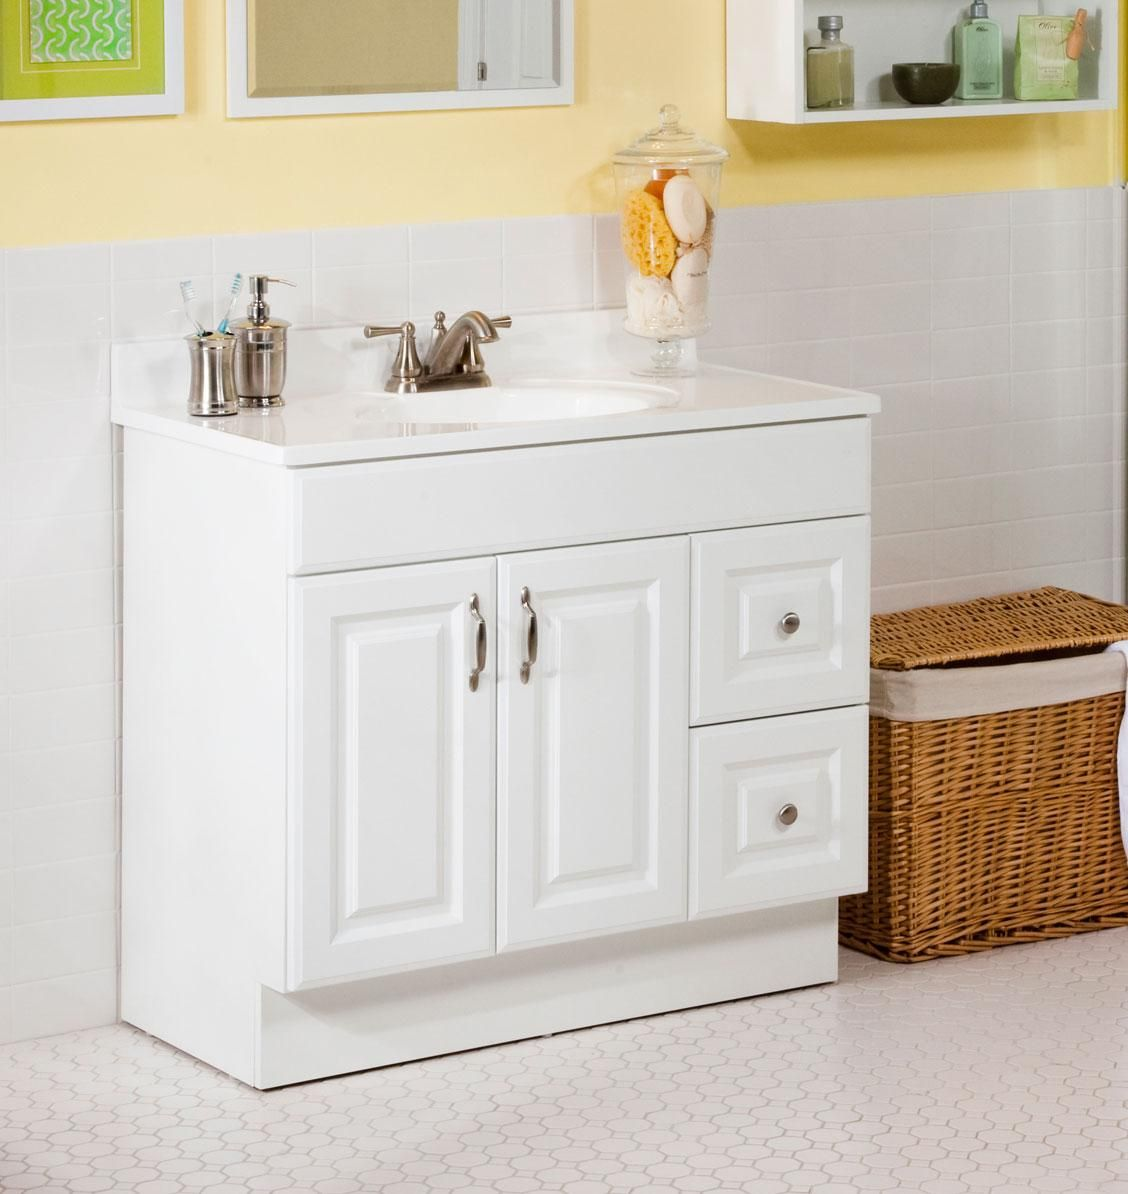 White Bathroom Vanity Cabinet. Fashion Wooden Bathroom Vanity Bathroom Corner Cabinet Wooden Cabinet Counter Top With Wash Sink